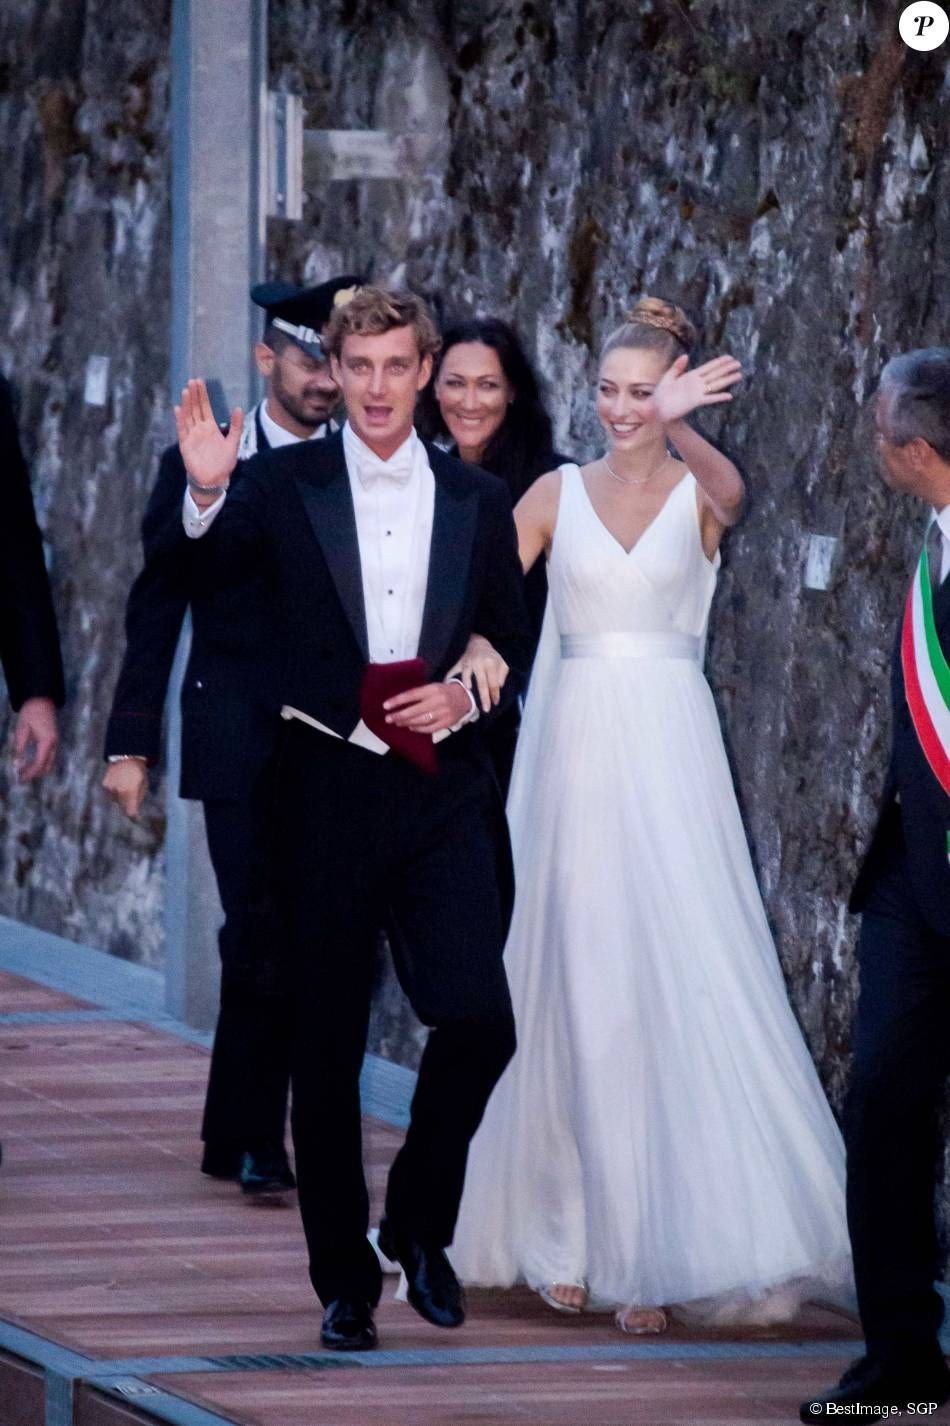 Pierre Casiraghi Et Beatrice Borromeo Un Mariage De Reve Regal